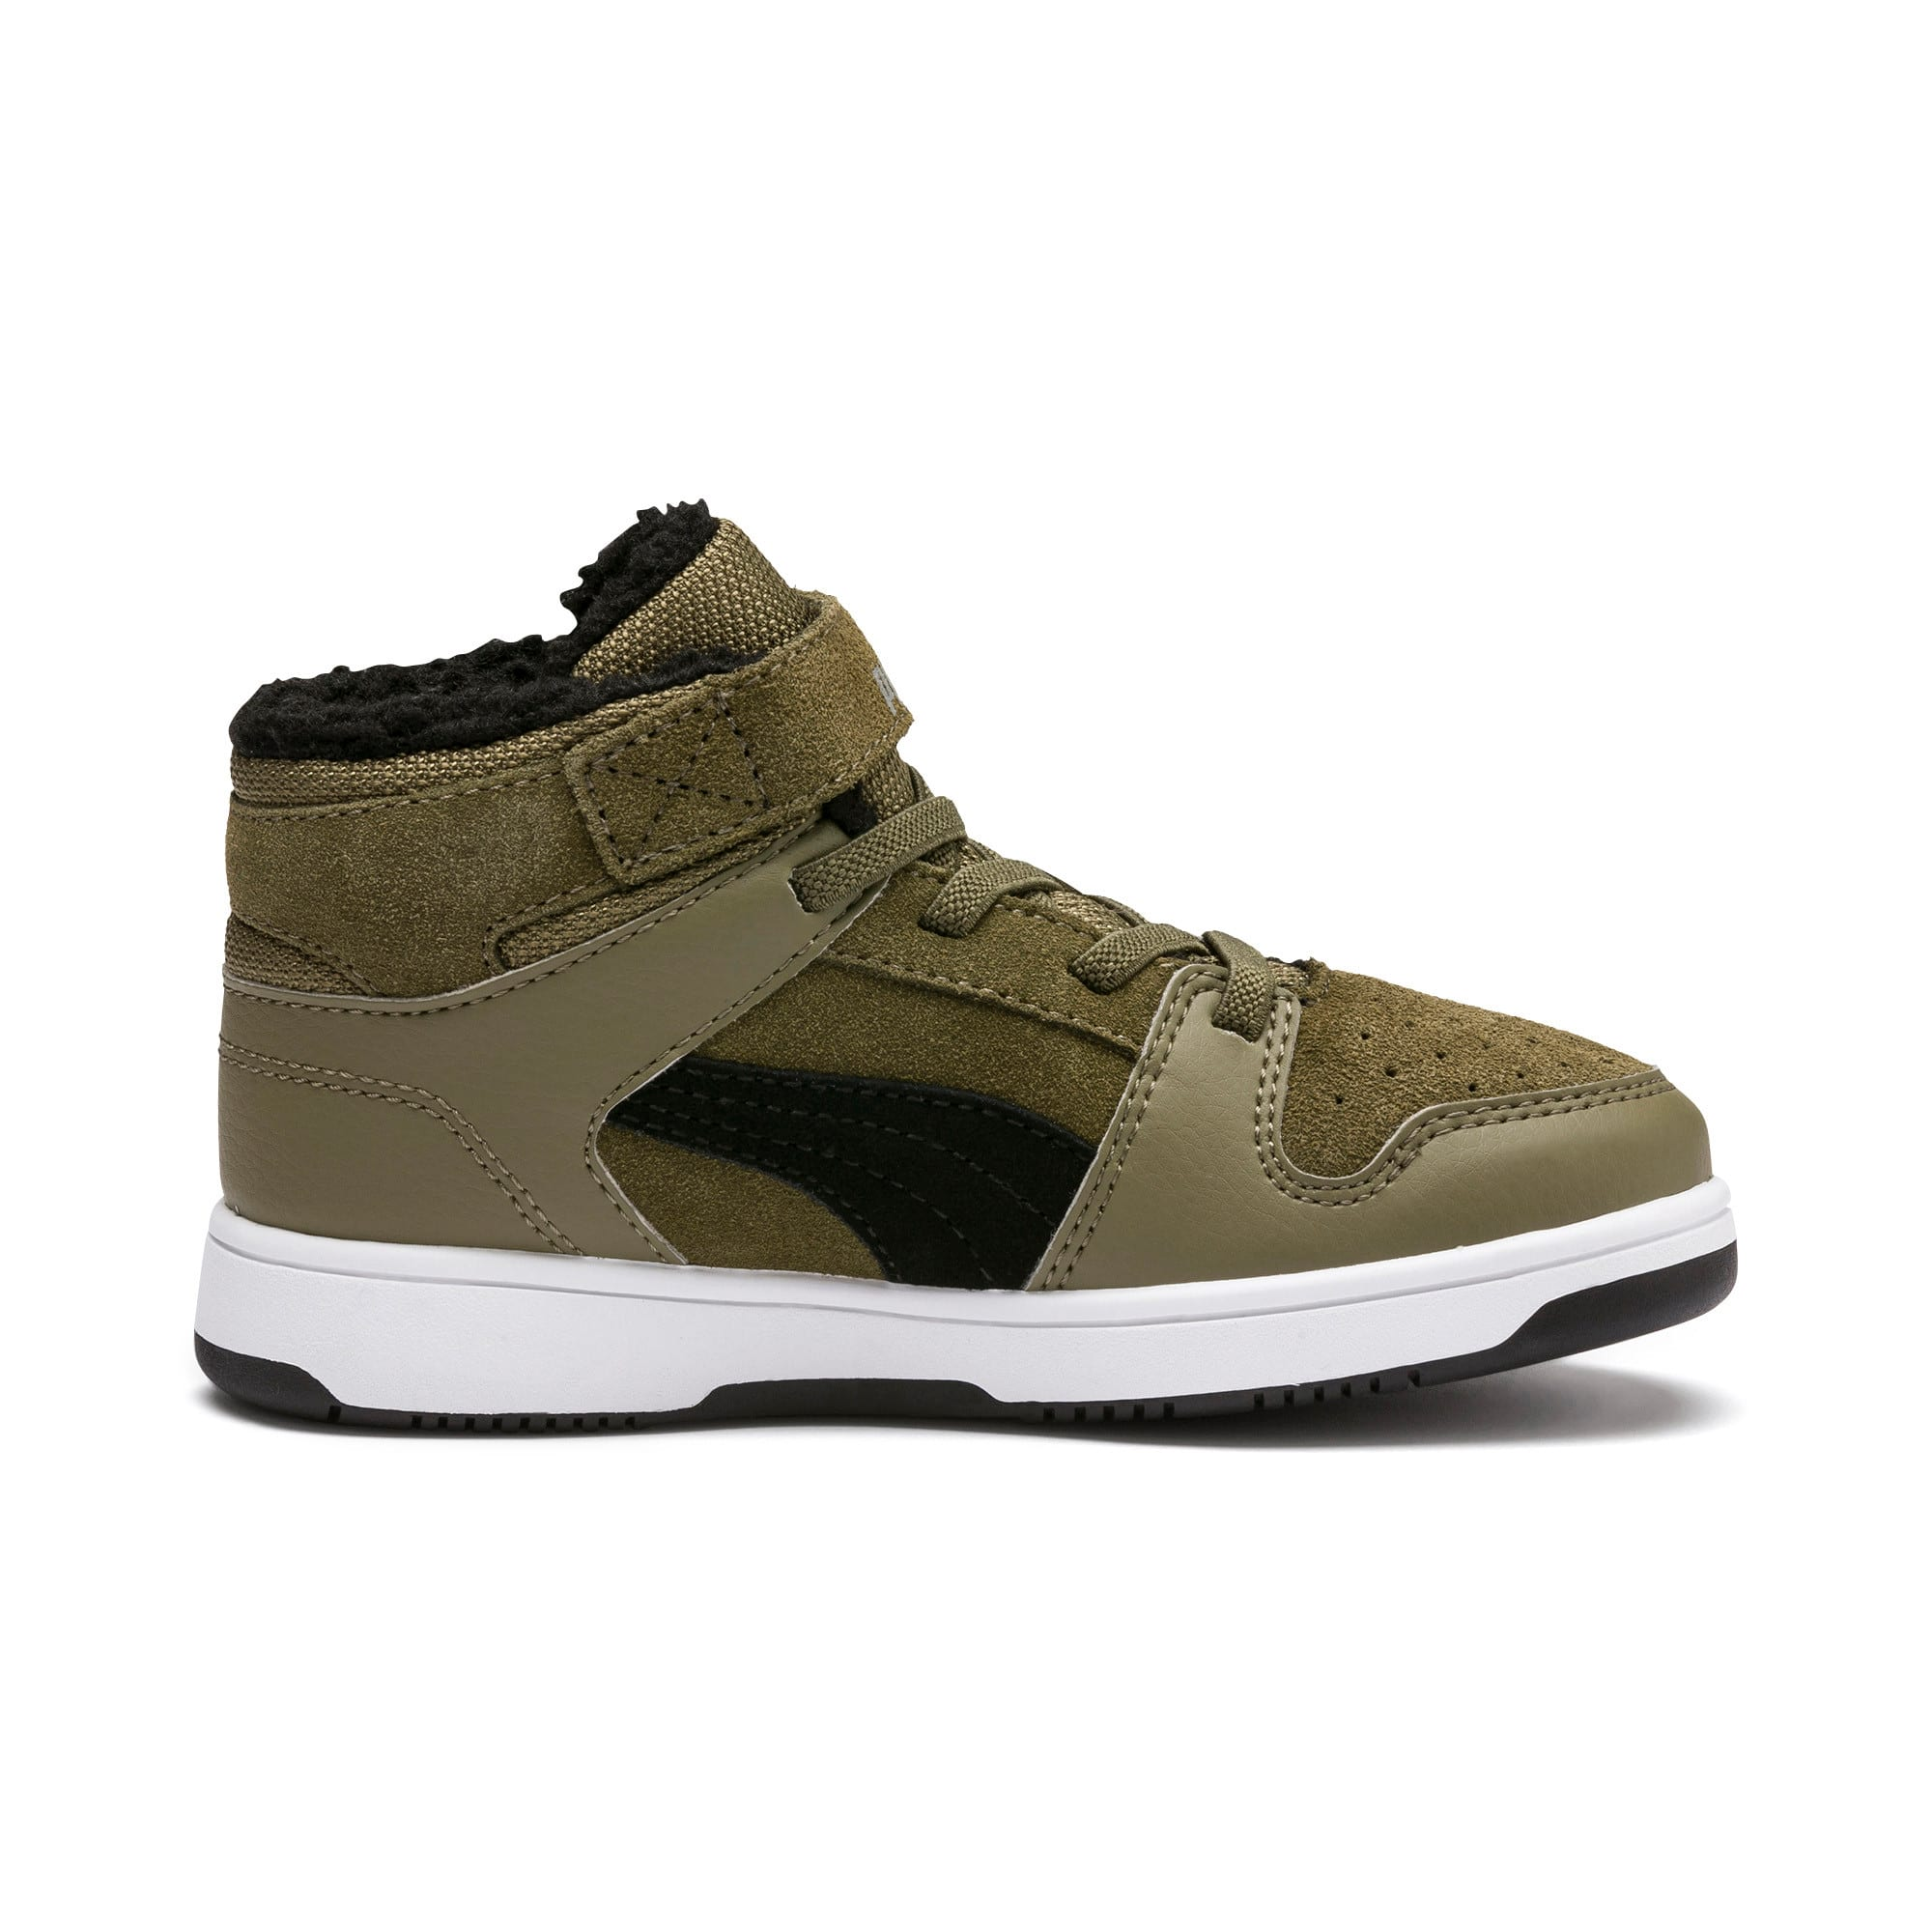 Rebound Lay-Up Fur V Kids' Trainers, B Olive-Black-Limestone-Wht, large